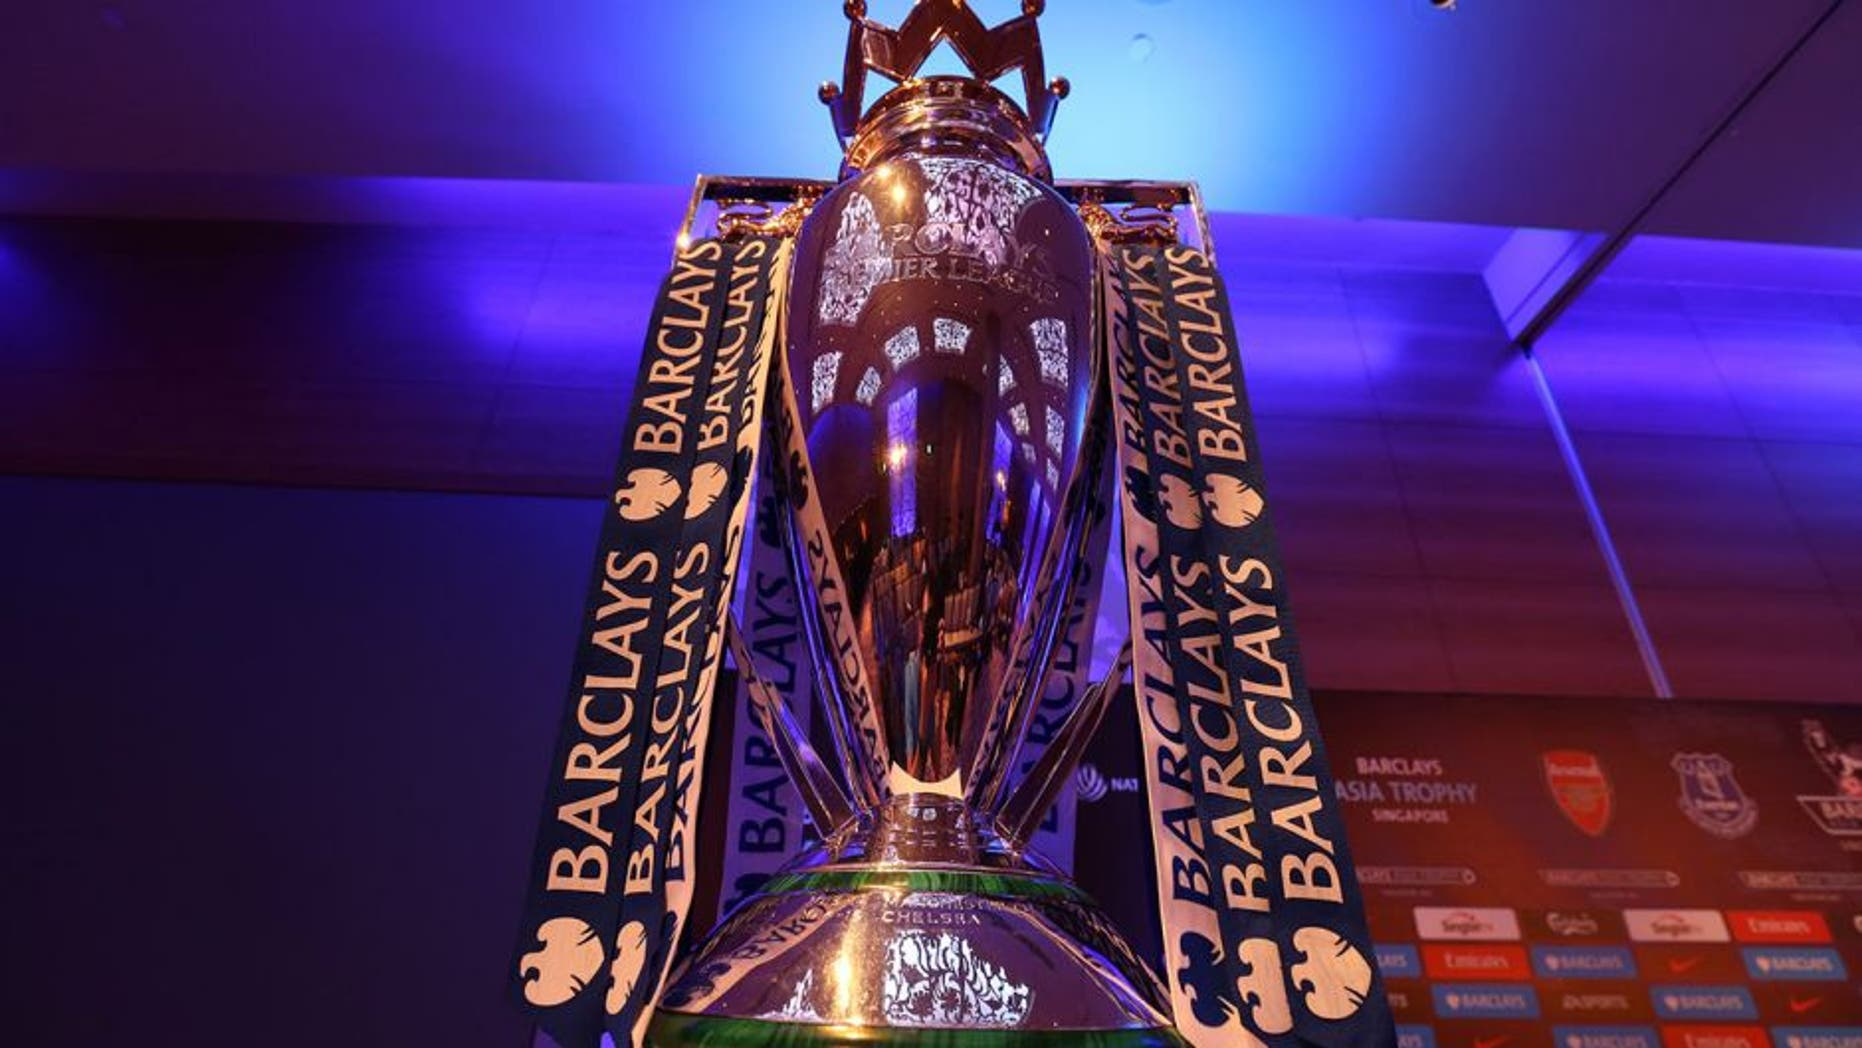 SINGAPORE - JULY 14: The Barclays Premier League Trophy is pictured during the Barclays Asia Trophy Press Conference at Grand Hyatt Hotel on July 14, 2015 in Singapore. (Photo by Lionel Ng/Getty Images)